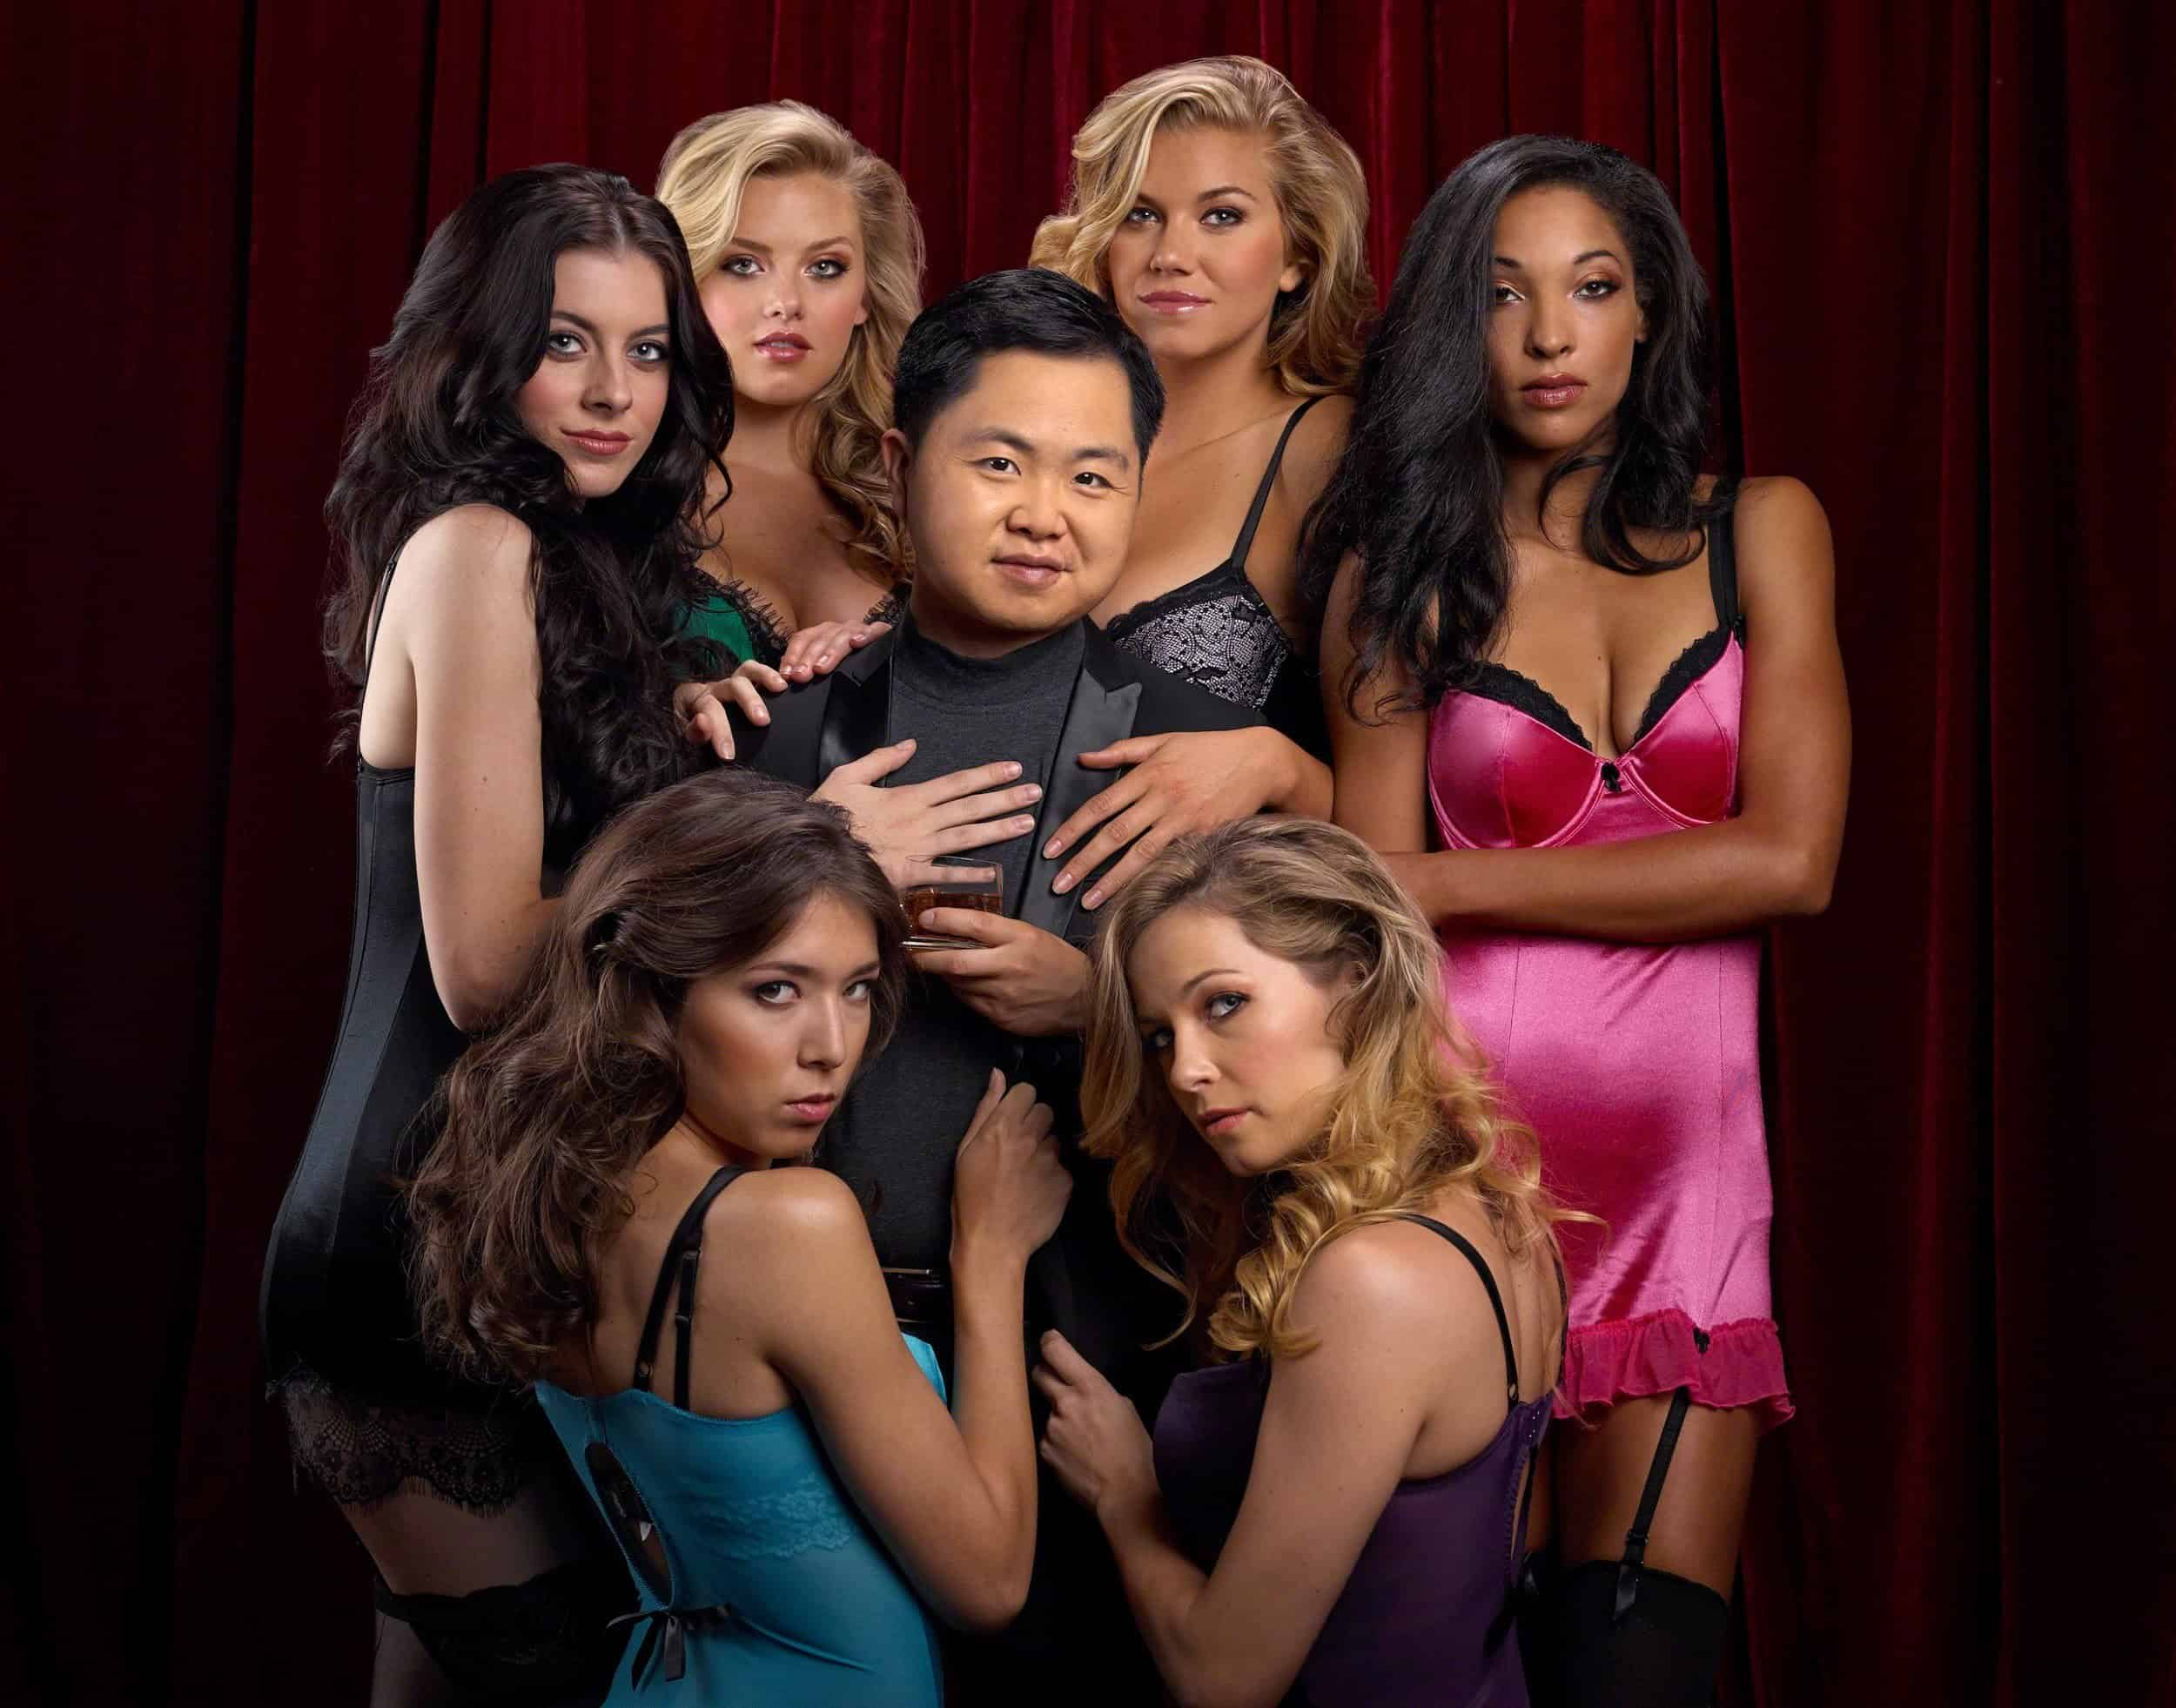 Chinese guy with womans - No